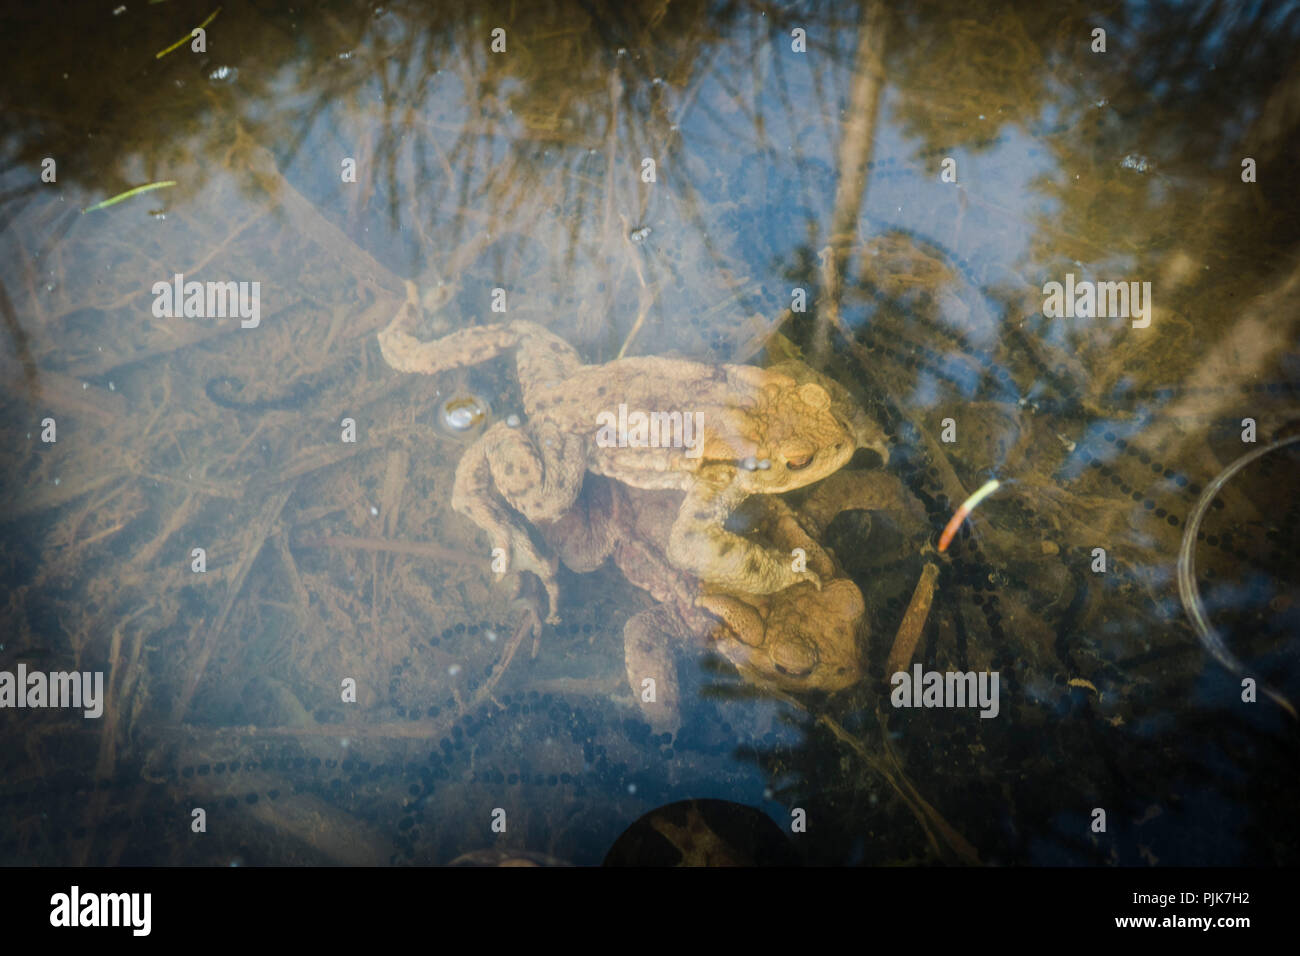 Frog releasing spawn into water, close-up - Stock Image